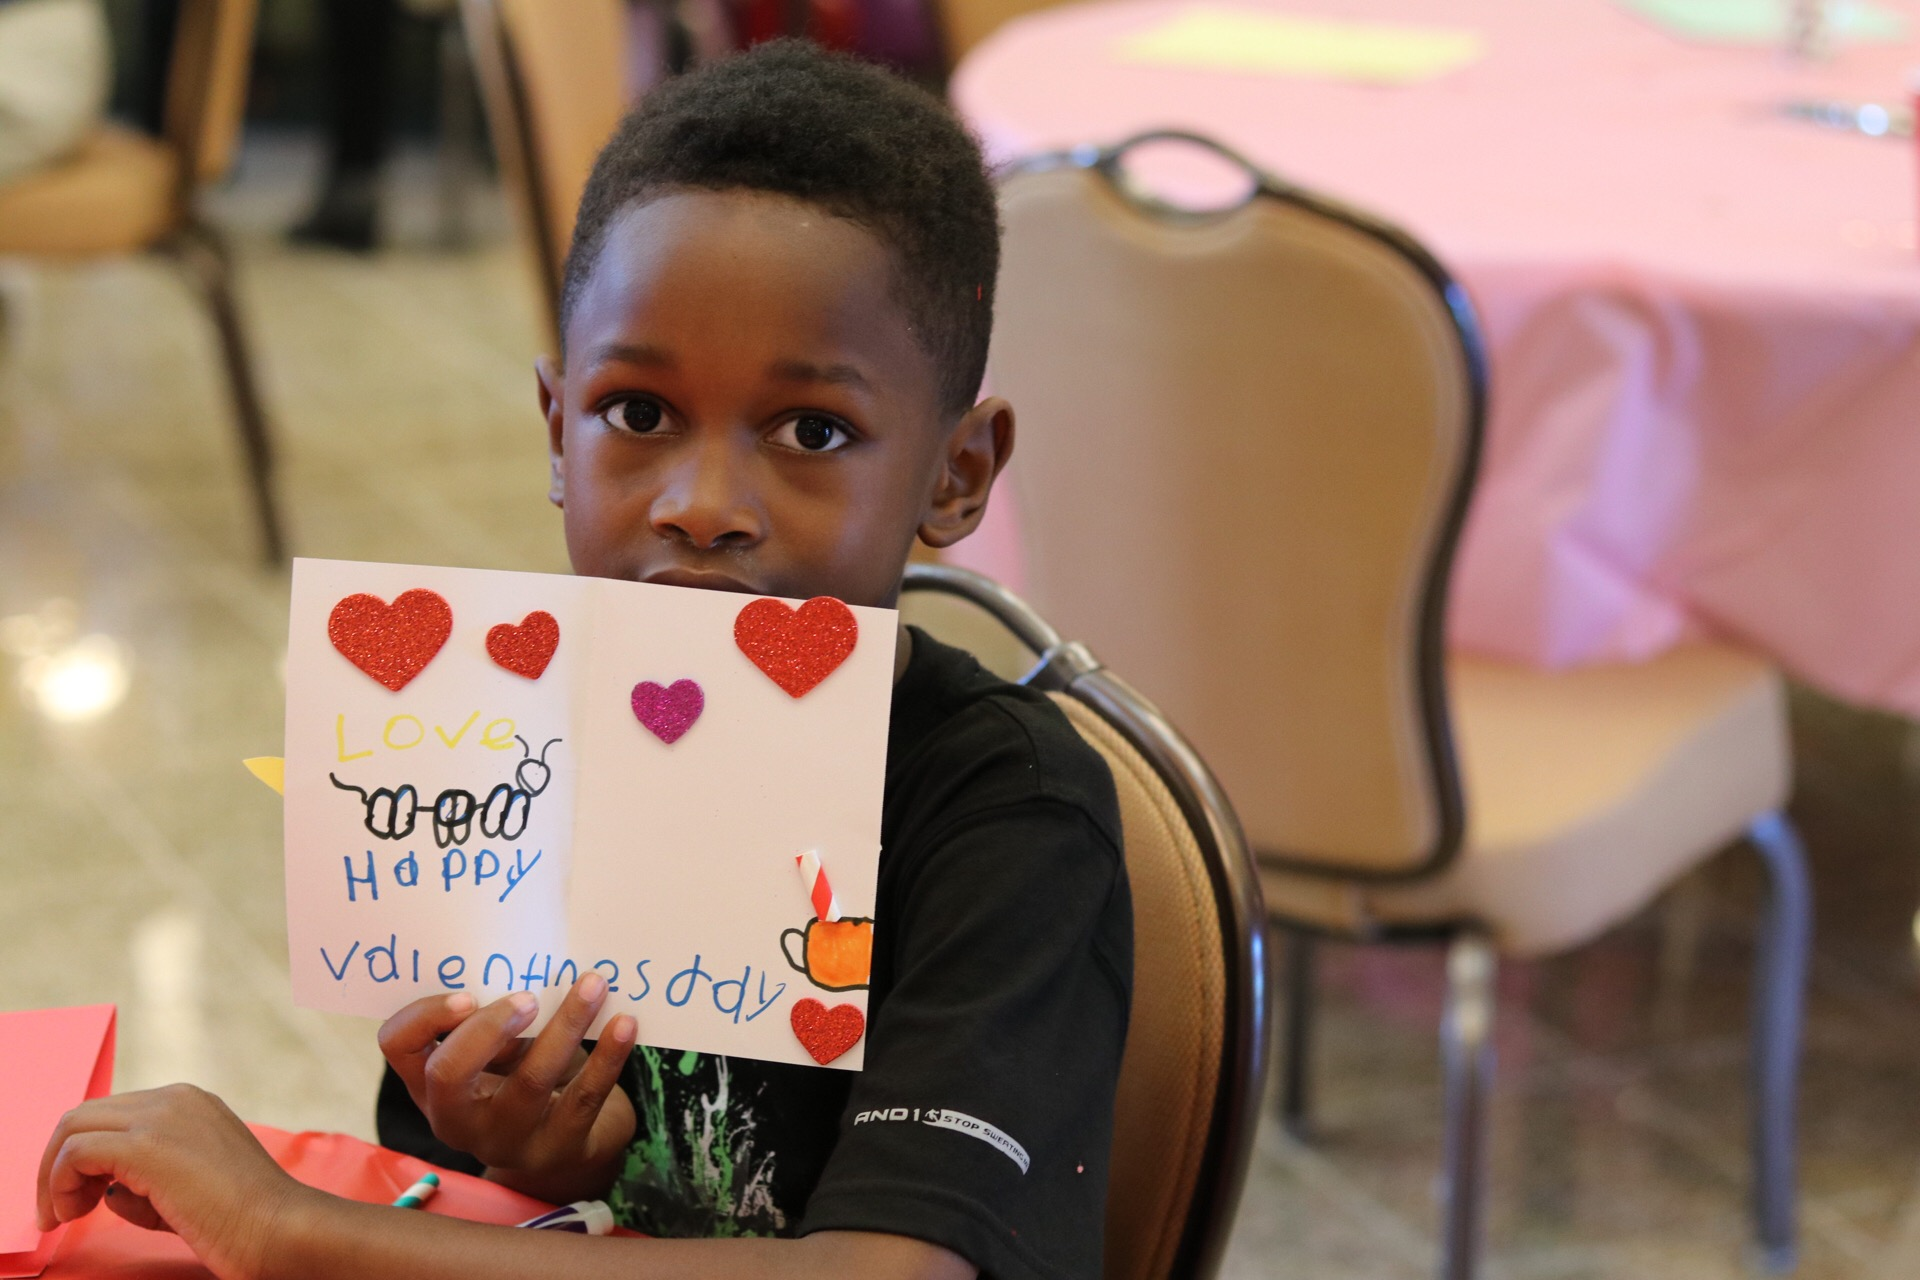 Young boy holding up a Happy Valentine's Day card.